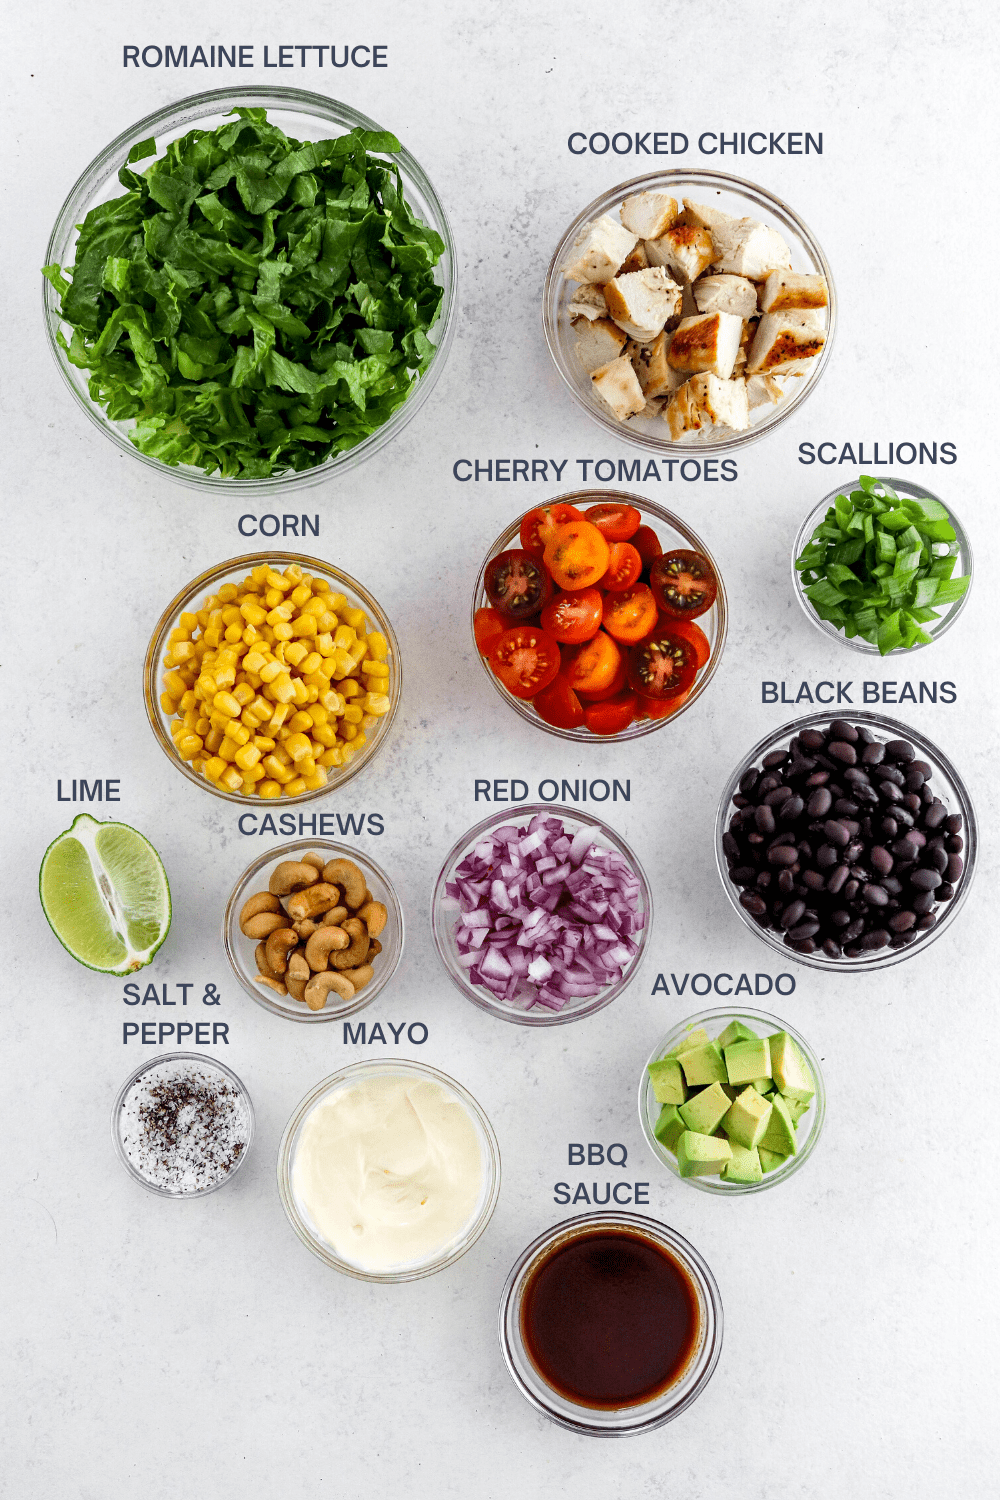 Bowl of green lettuce, bowl of diced chicken, bowl of corn, bowl of sliced tomatoes, bowl of scallions, bowl of black beans. bowl if nuts, bowl of diced red onion, bowl if diced avocado, lime sliced in half, bowl of mayo and a bowl of bbq sauce on a white surface with labels above each bowl.